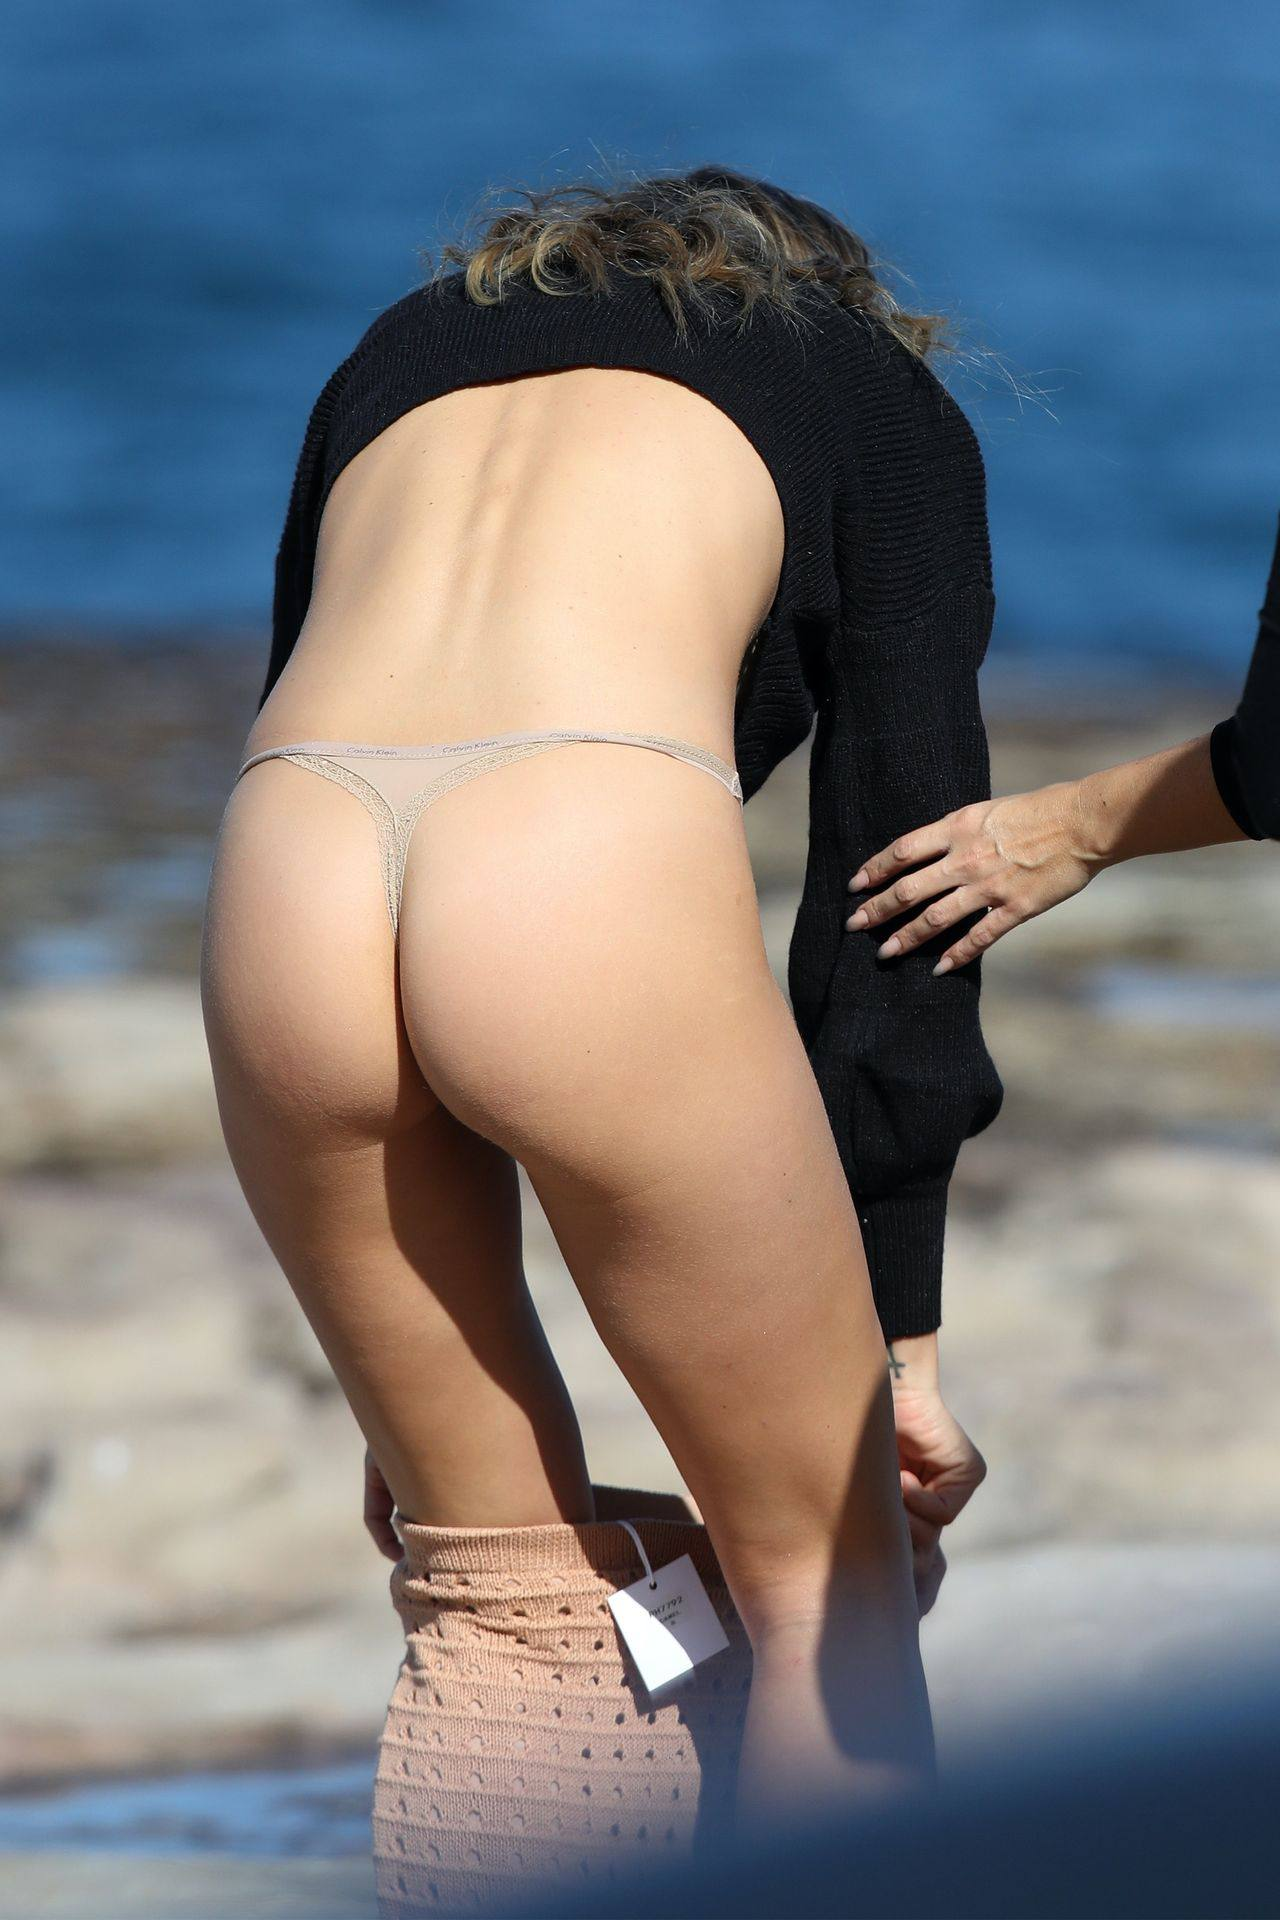 Stephanie Claire Smith – Sexy Big Camel Toe In Panties At Photoshoot In Sydney 0018